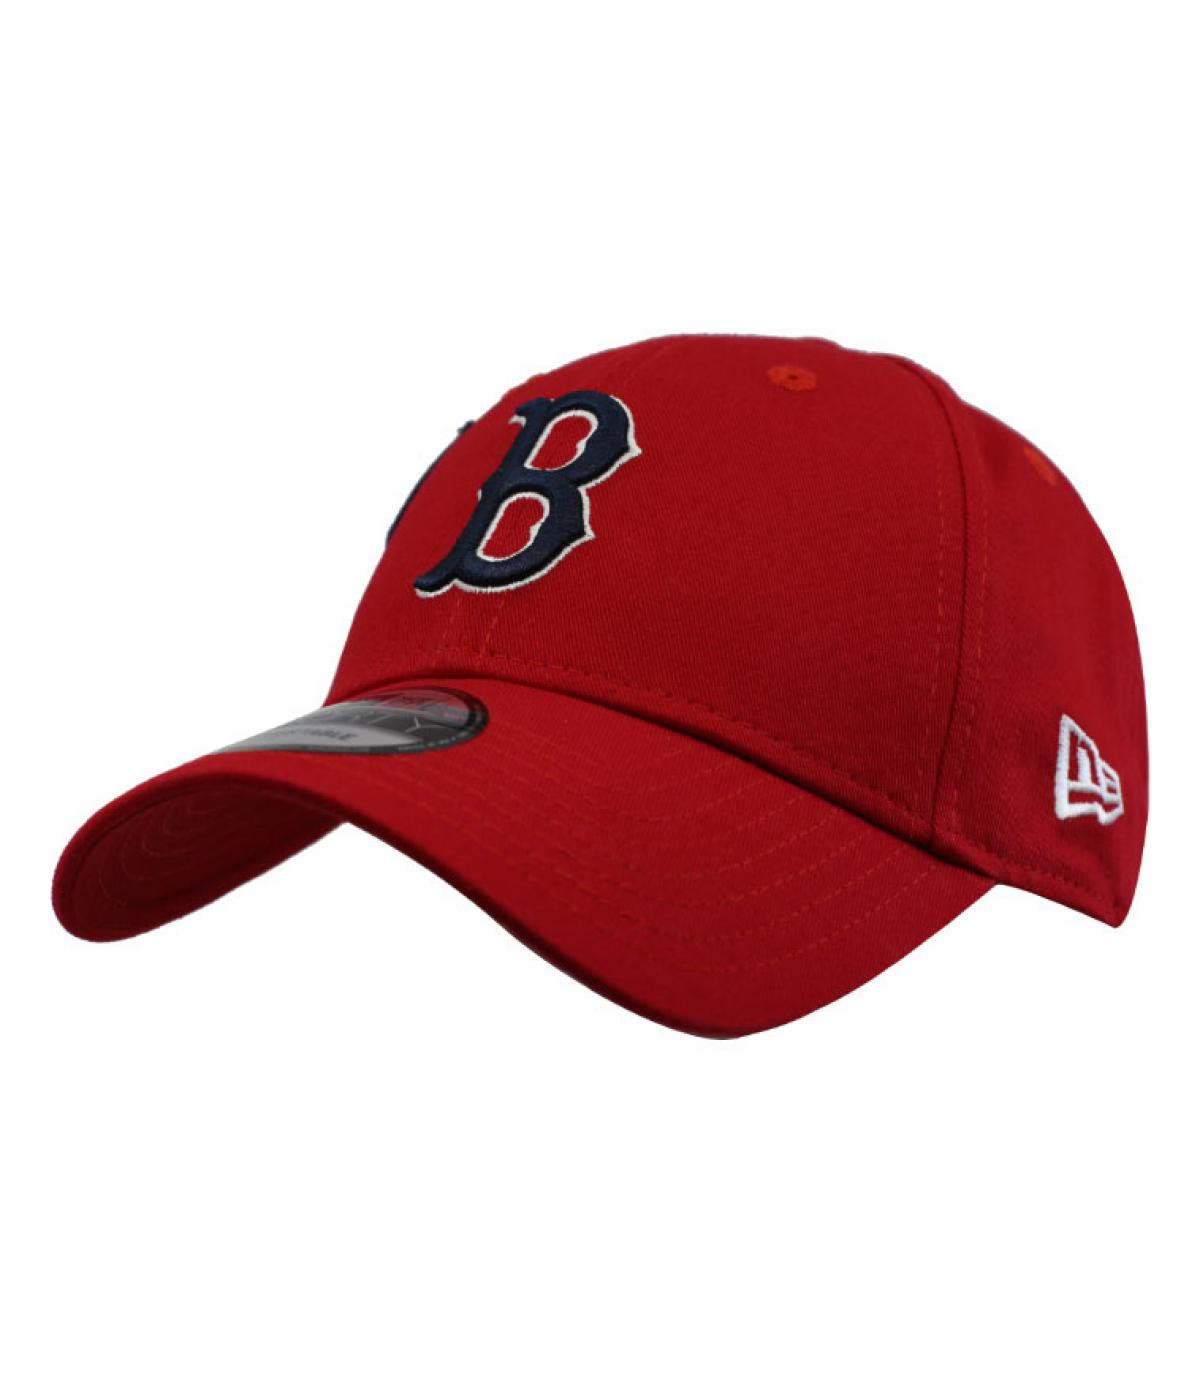 outlet store 3fd8d 96cfa New Era red cap - Buy online at Headict.